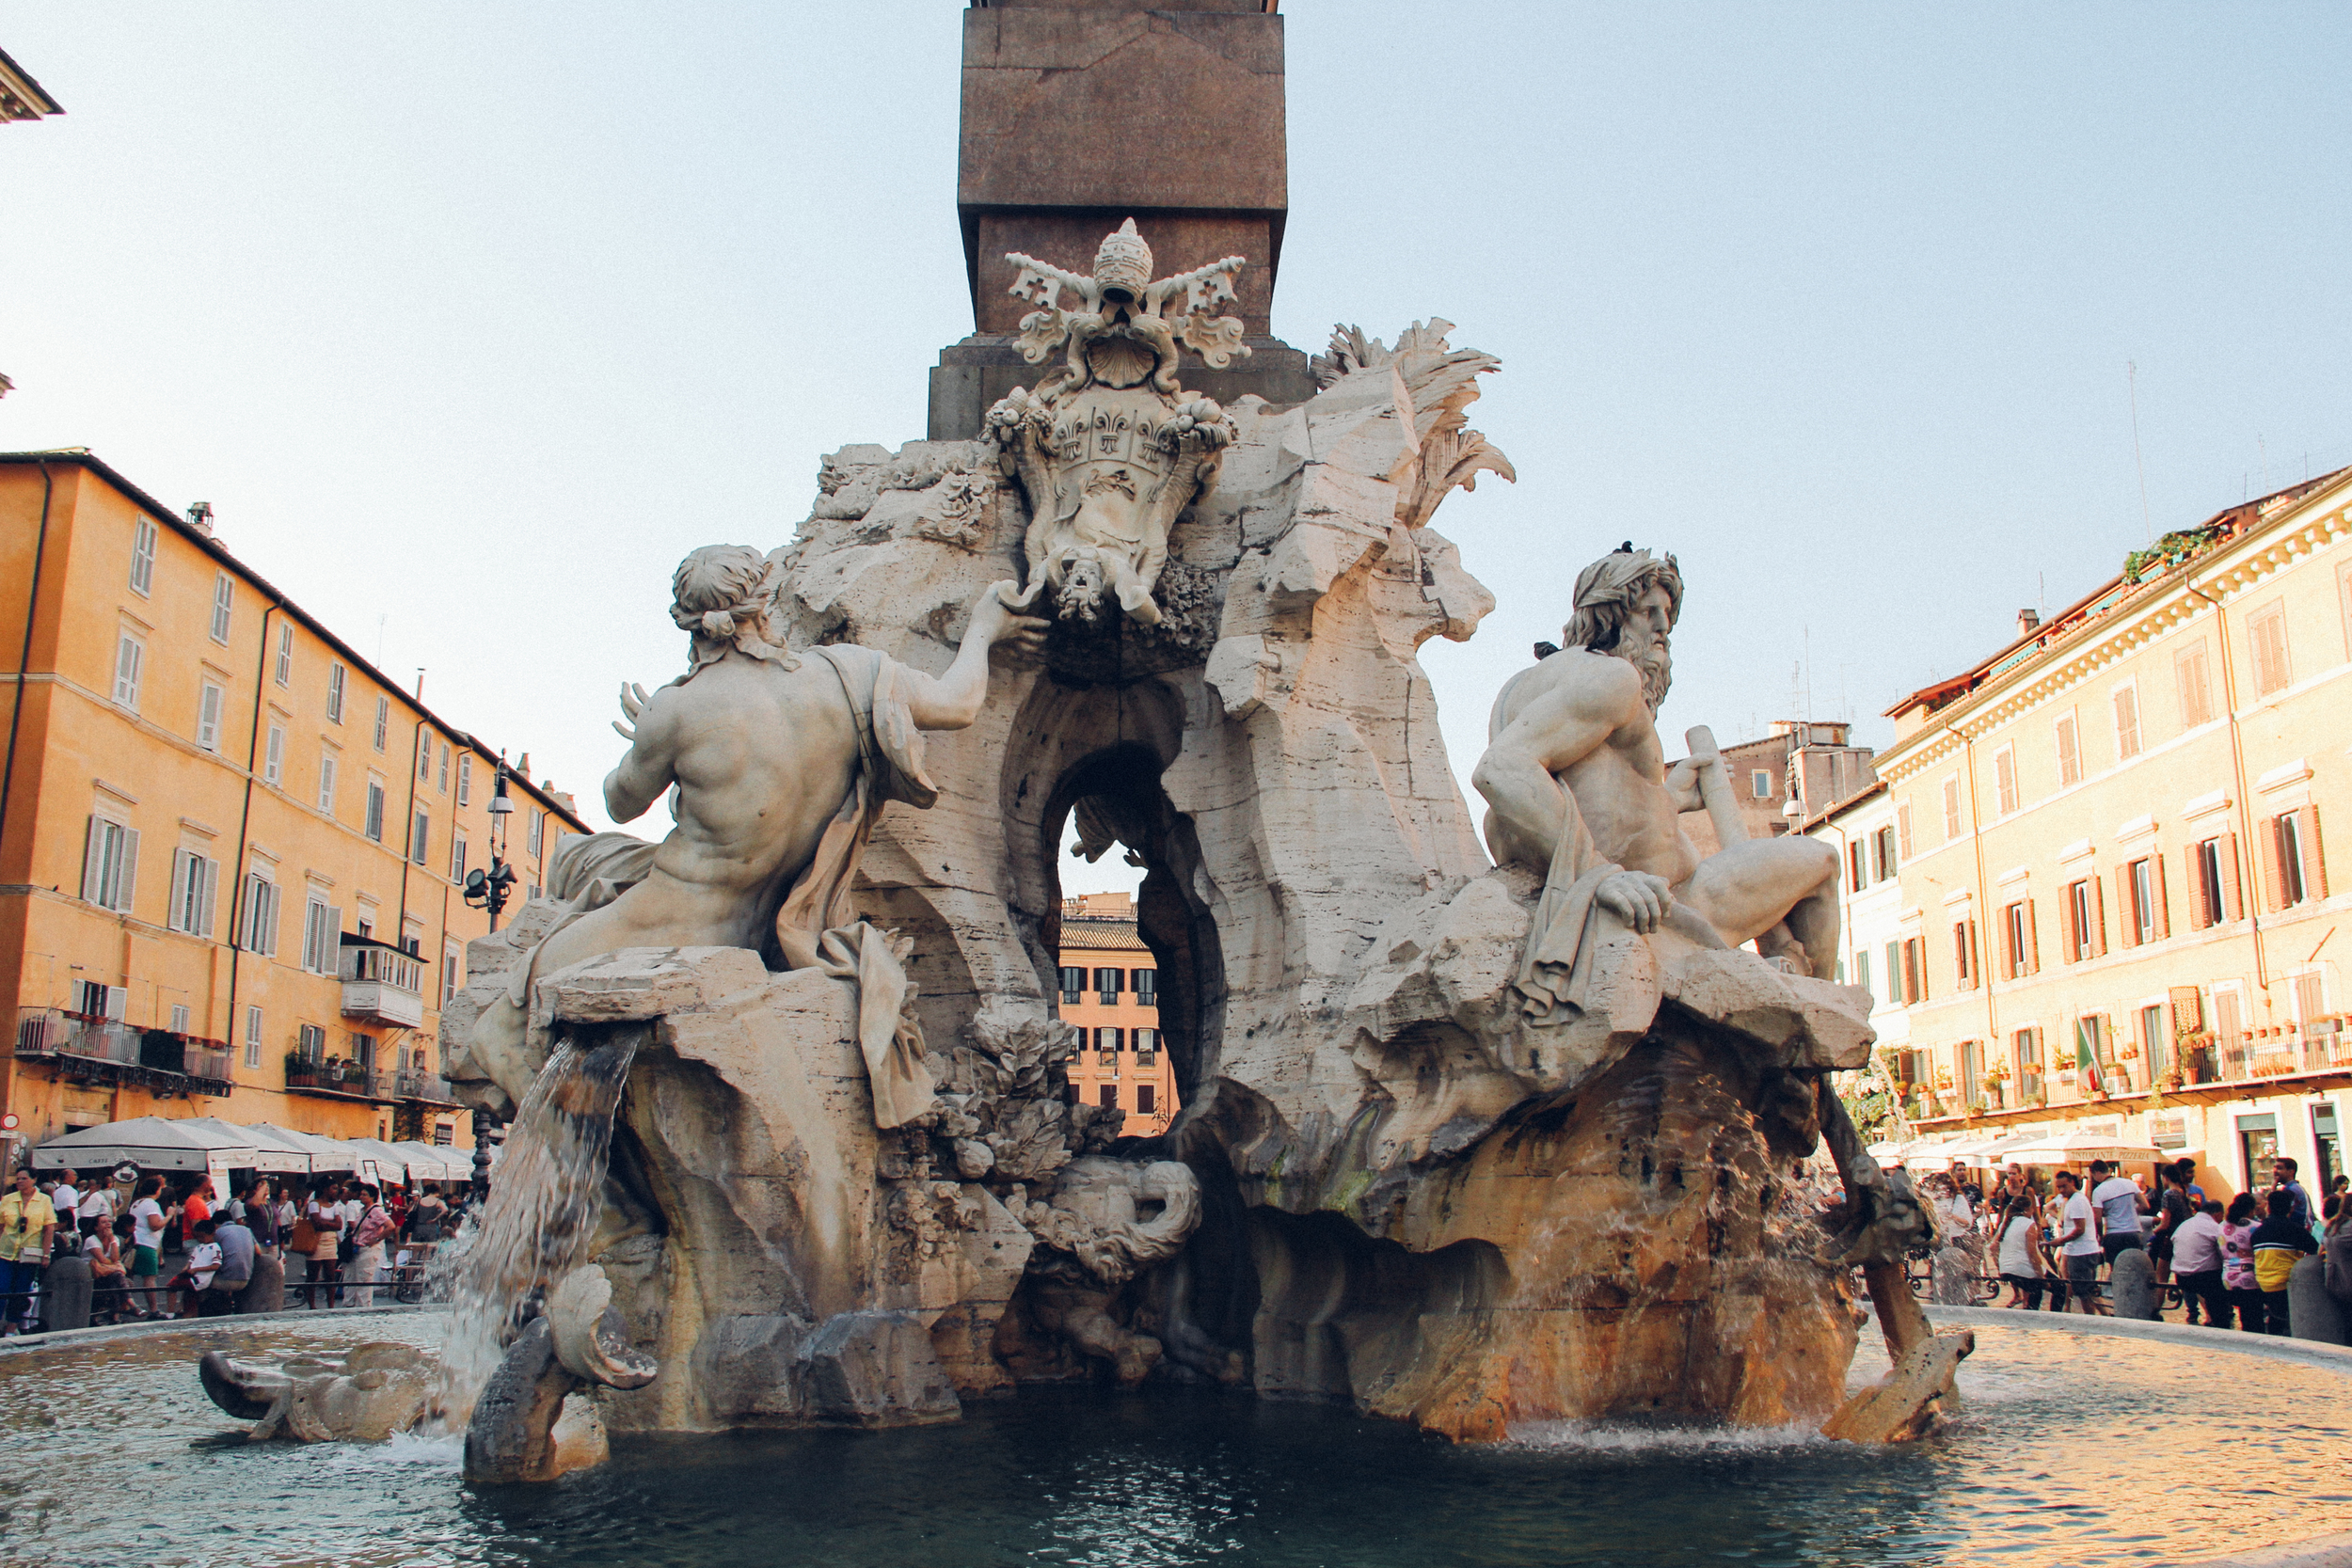 Fontana dei Quattro Fiumi (Fountain of the Four Rivers), 1647-1651, the largest of the three fountains